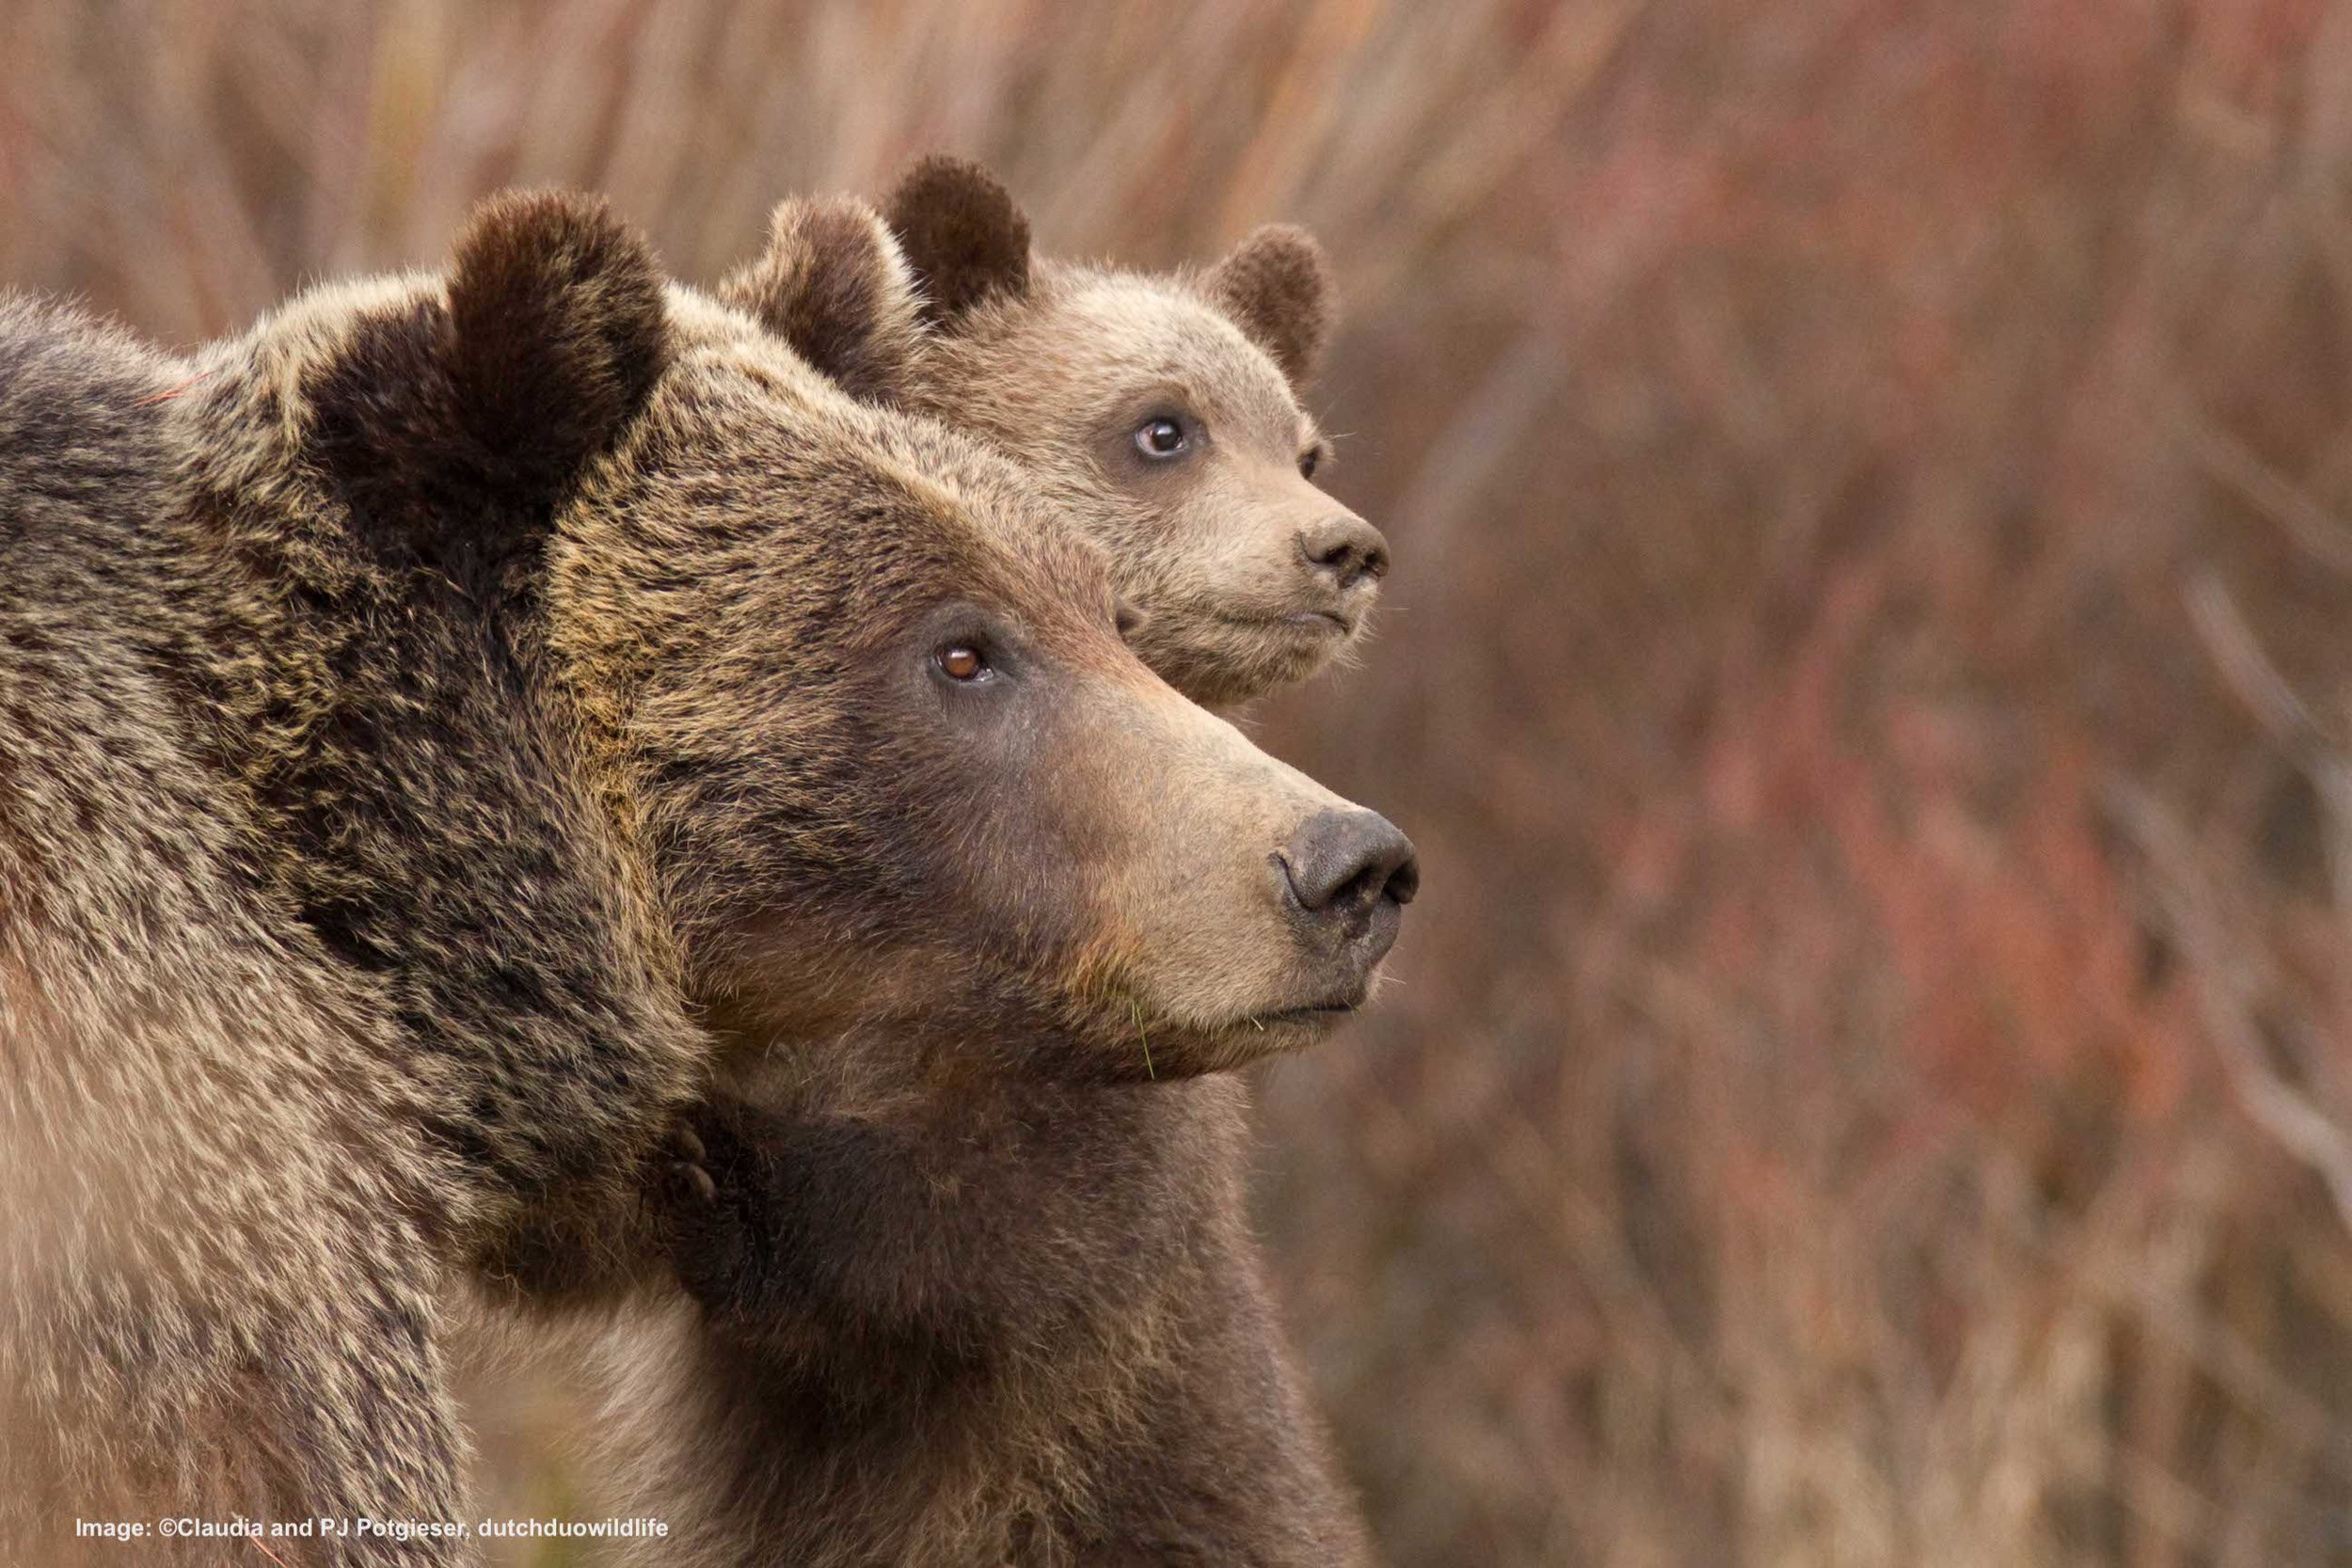 READY TO EMBARK ON A RESPONSIBLE GRIZZLY BEAR ADVENTURE? WATCH FOR JORN'S NEXT ARTICLE ON THE BEST PLACES TO VIEW AND PHOTOGRAPH GRIZZLY BEARS Image:  ©Claudia and PJ Potgieser, dutchduowildlife